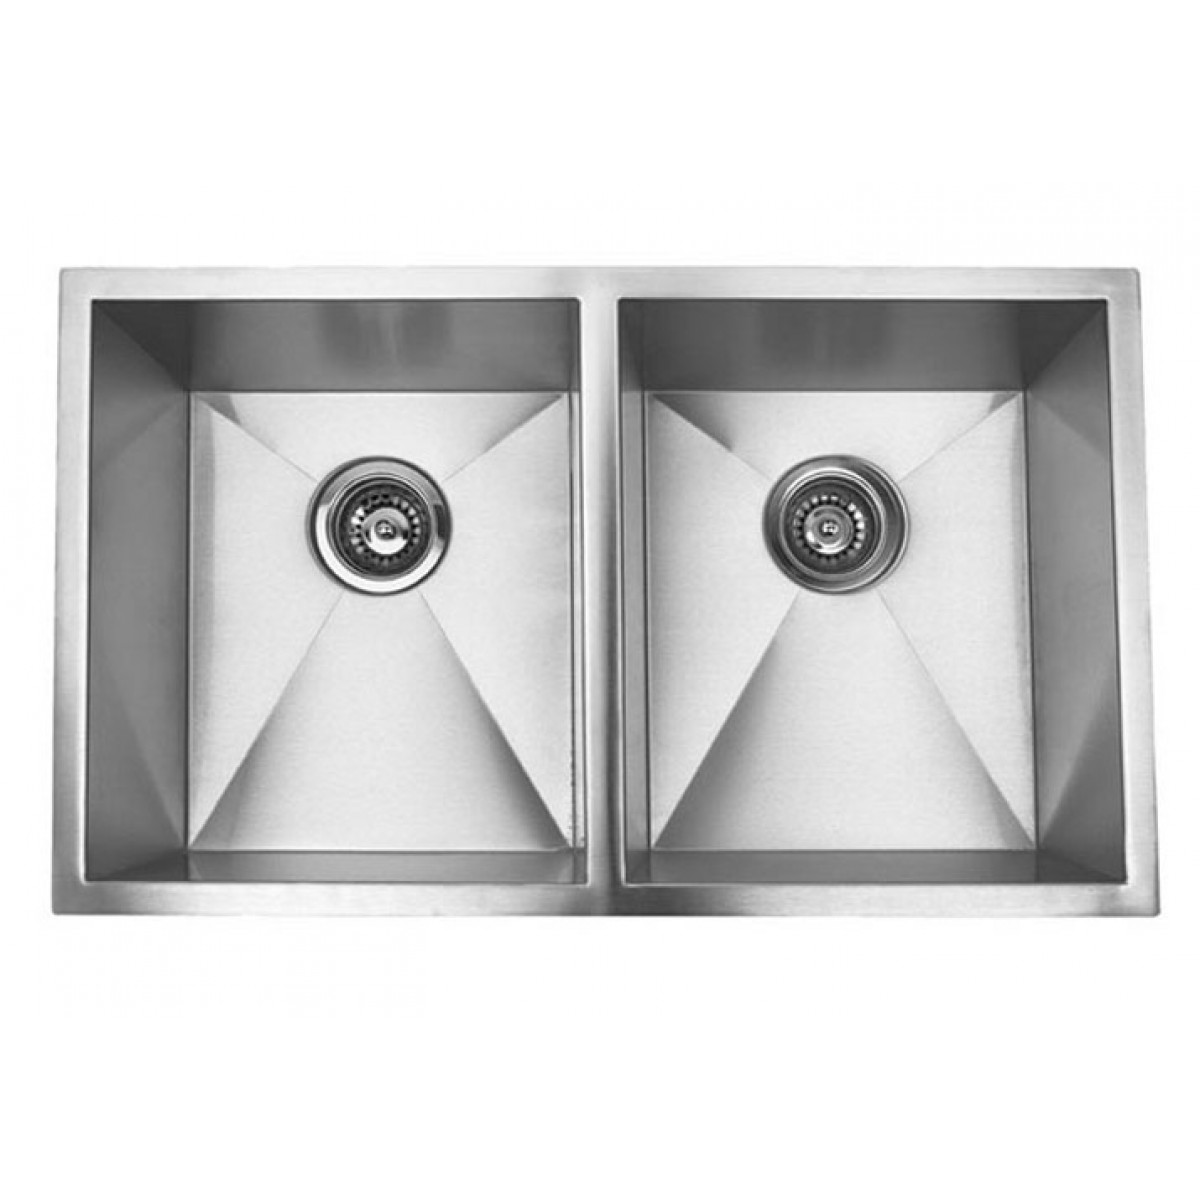 37 inch stainless steel undermount 50 50 double bowl for Designer kitchen sinks stainless steel